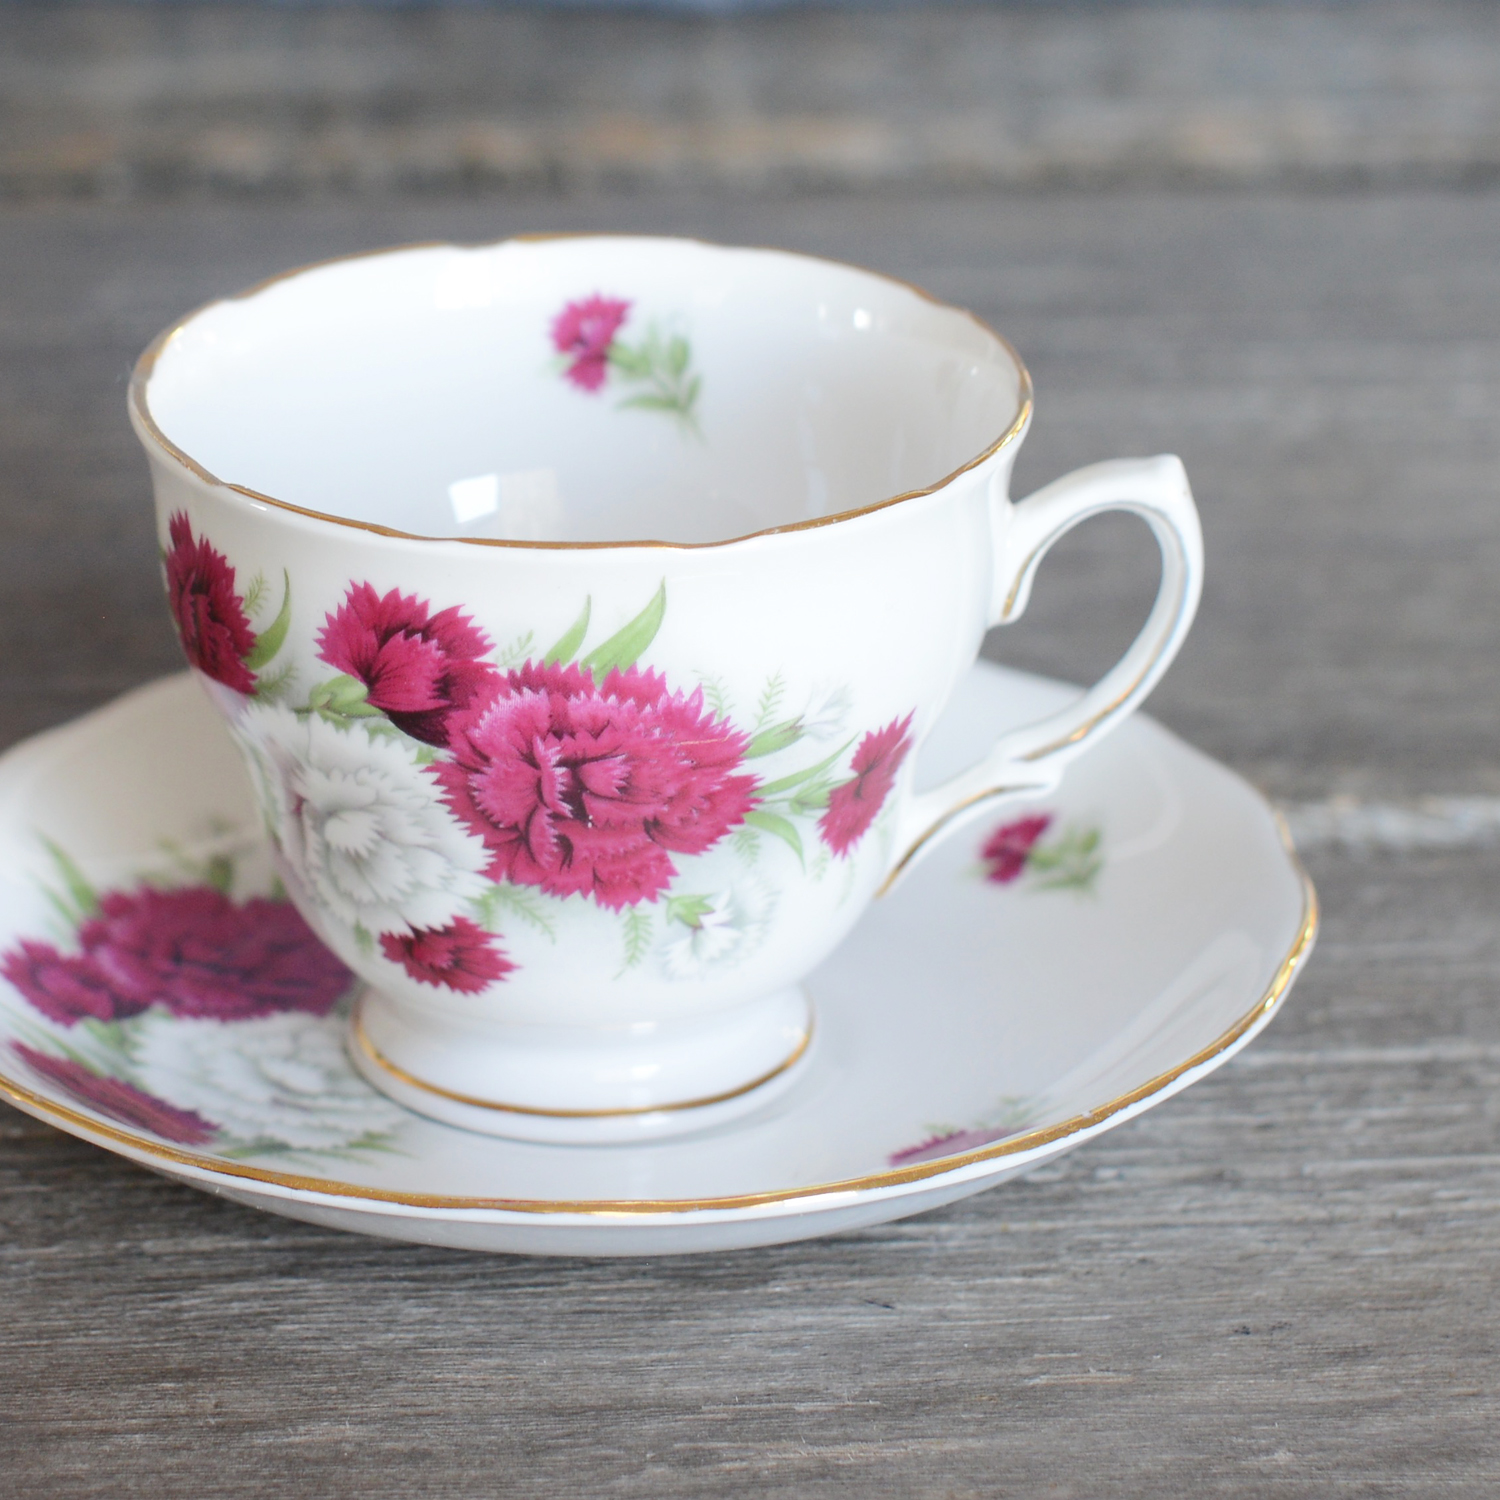 miah tea cup and saucer